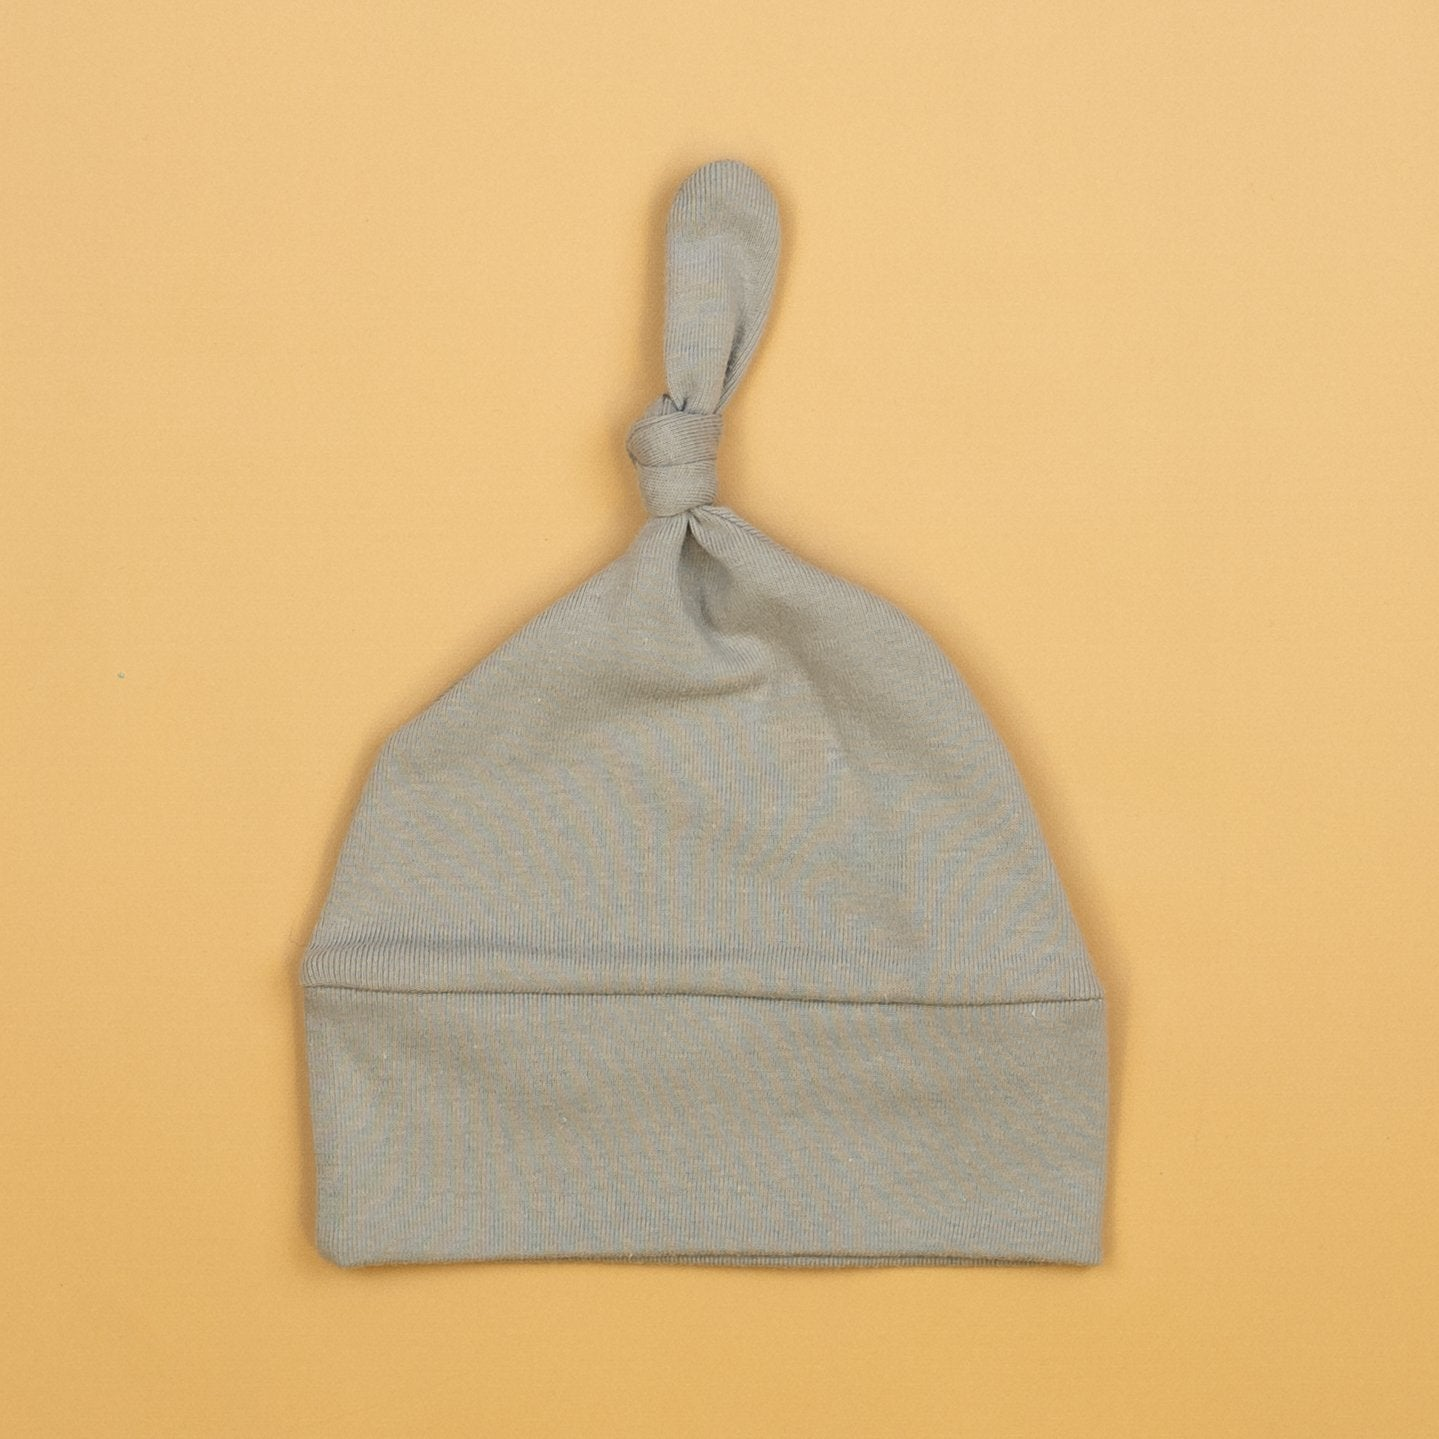 Cuddle Sleep Dream Knot Hat Light Gray Knot Hat